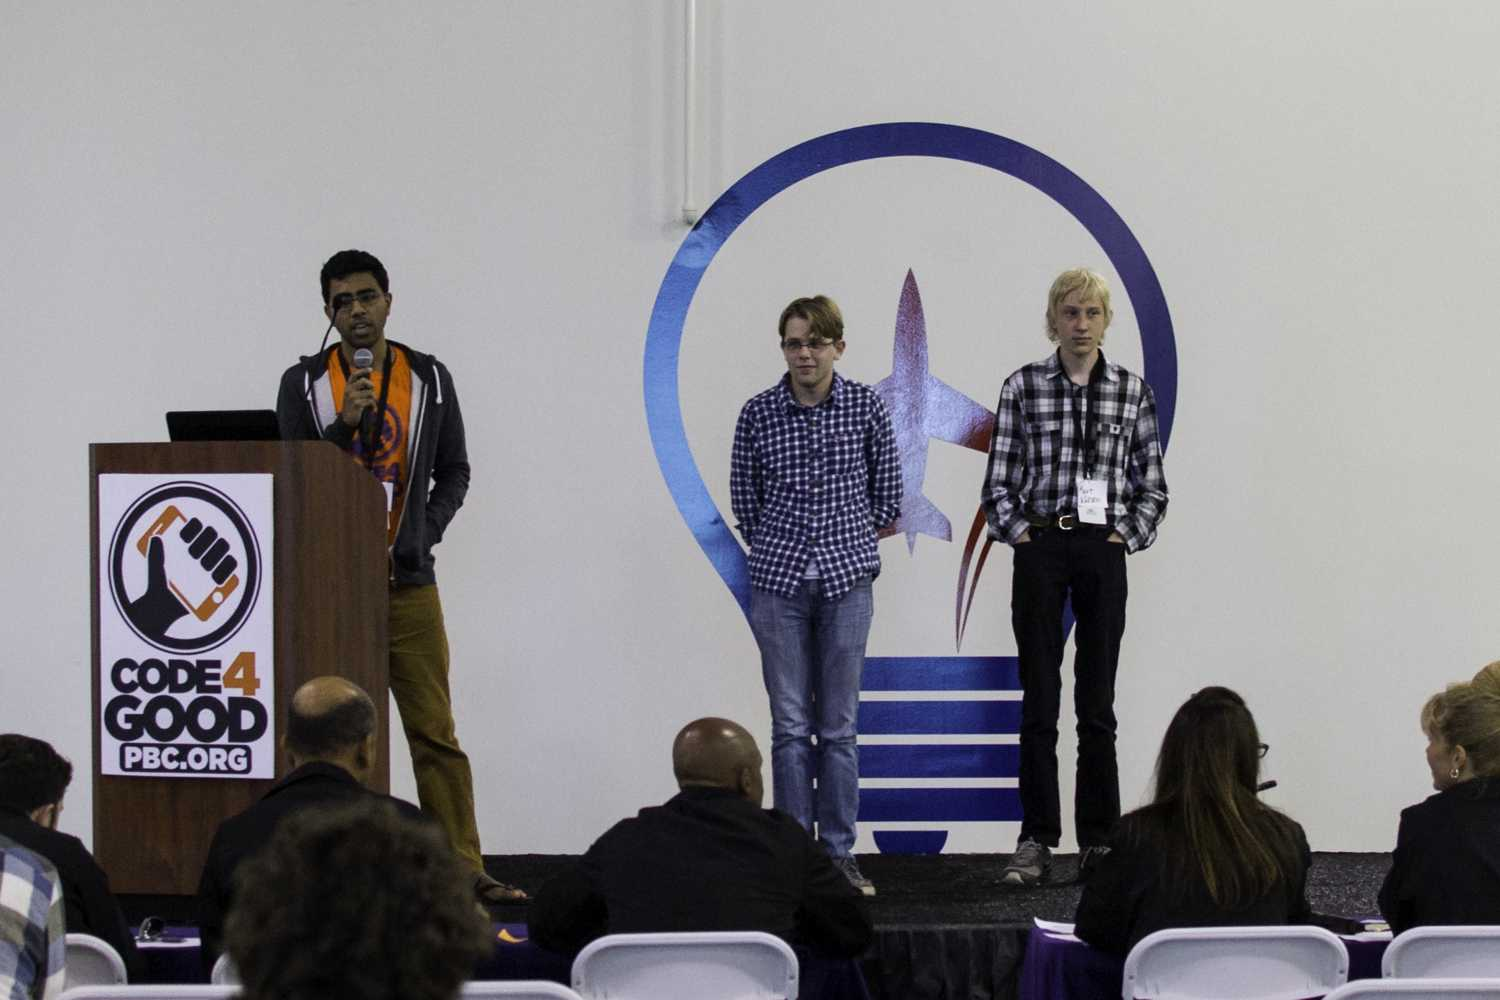 """First place winners: Aton, Rohan, and Kurt team """"TechGarage"""" give their 5 minute presentation to the judges. Photo by Alexis Hayward 